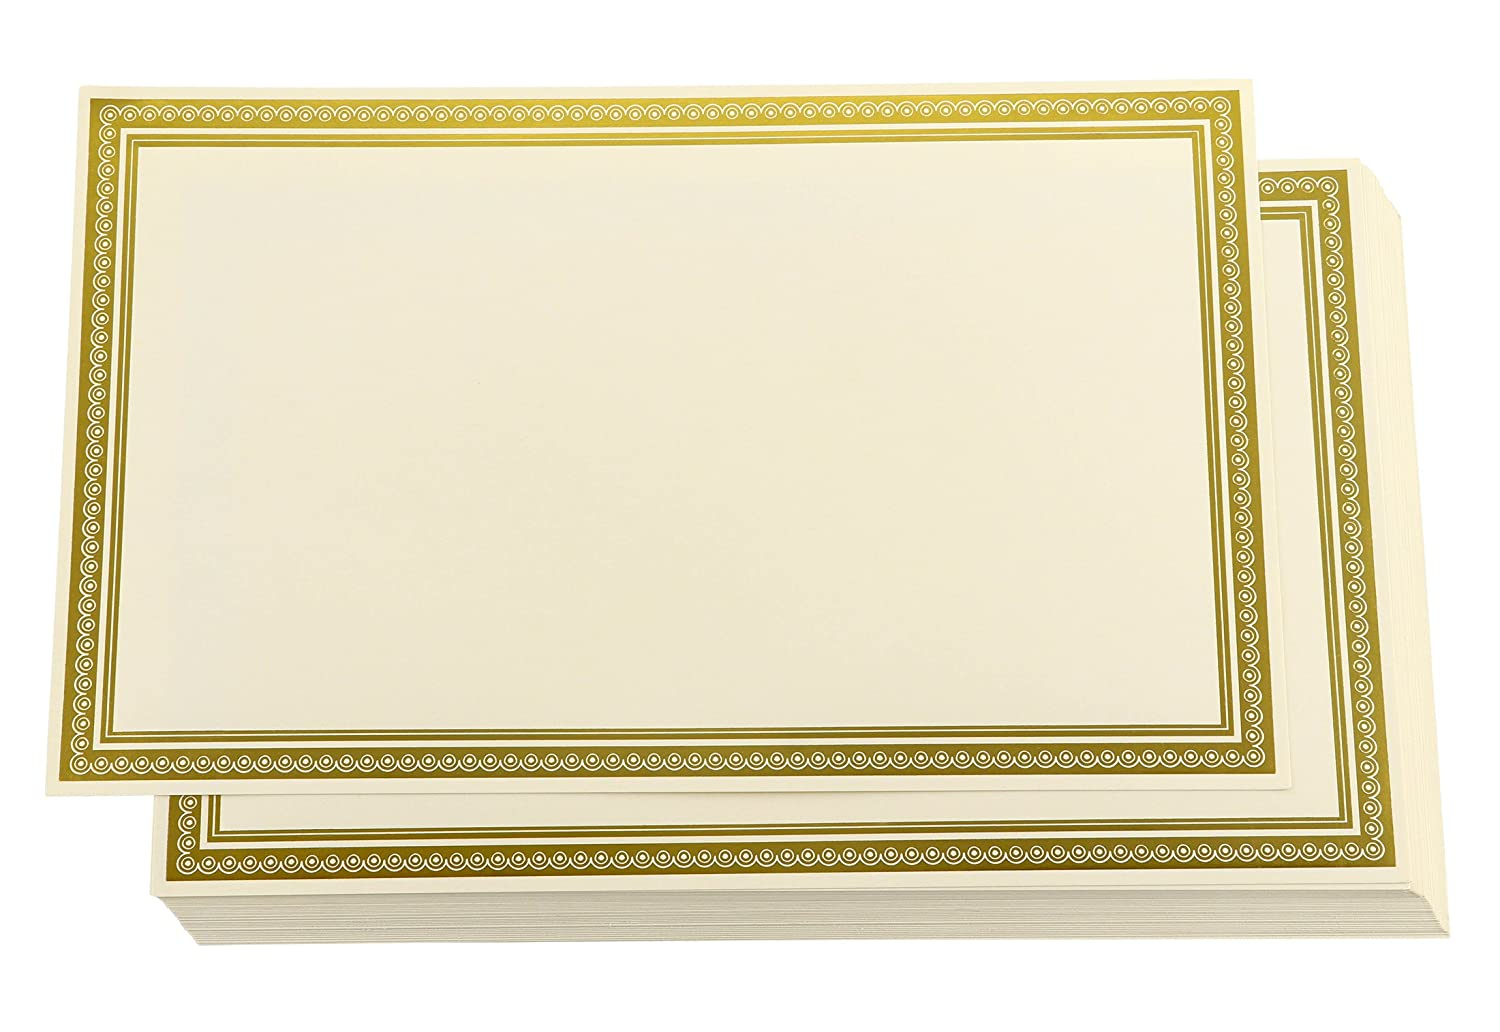 Award Certificates - 36-Pack Blank Plain Ivory Paper Sheets with Gold Foiled Metallic Border, Laser and Inkjet Printer Compatible, Legal Size, 8.5 x 14 inches Juvale